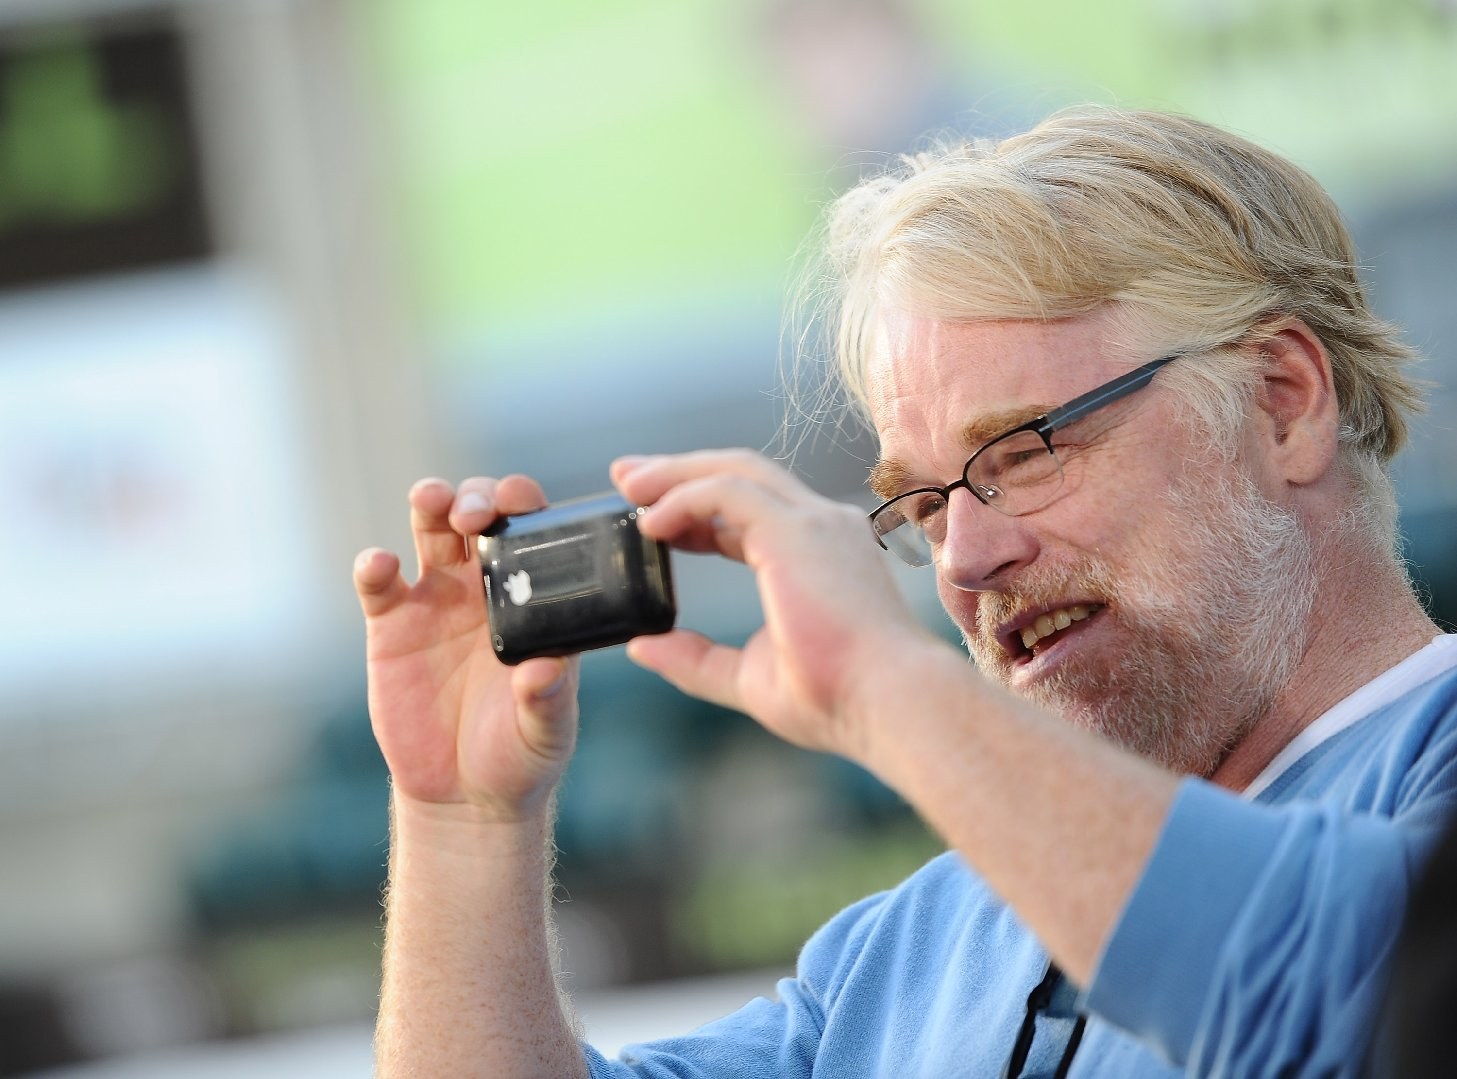 Philip Seymour Hoffman's Bay Area Cameo: the A's, Art Howe and 'Moneyball'